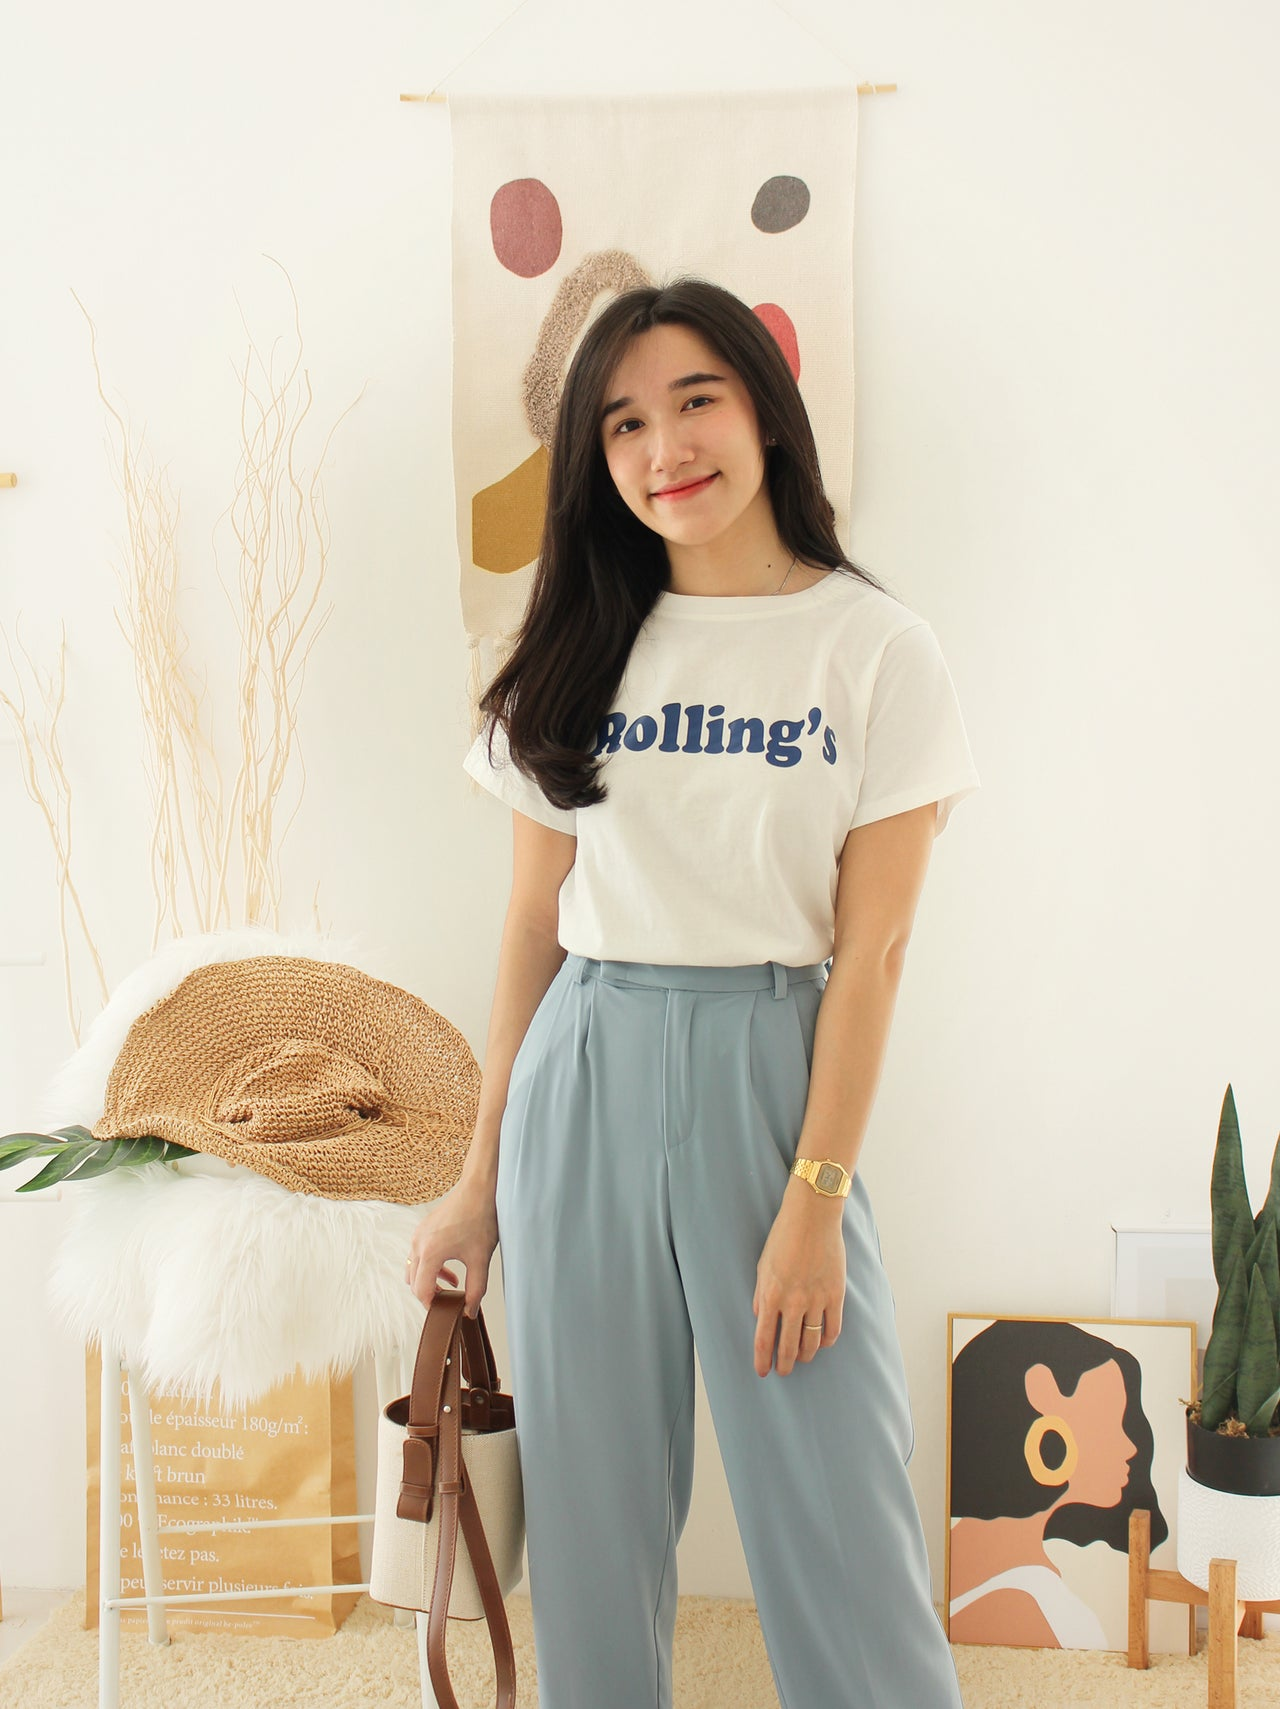 ROLLING'S Tee - LovelyMadness Clothing Online Fashion Malaysia